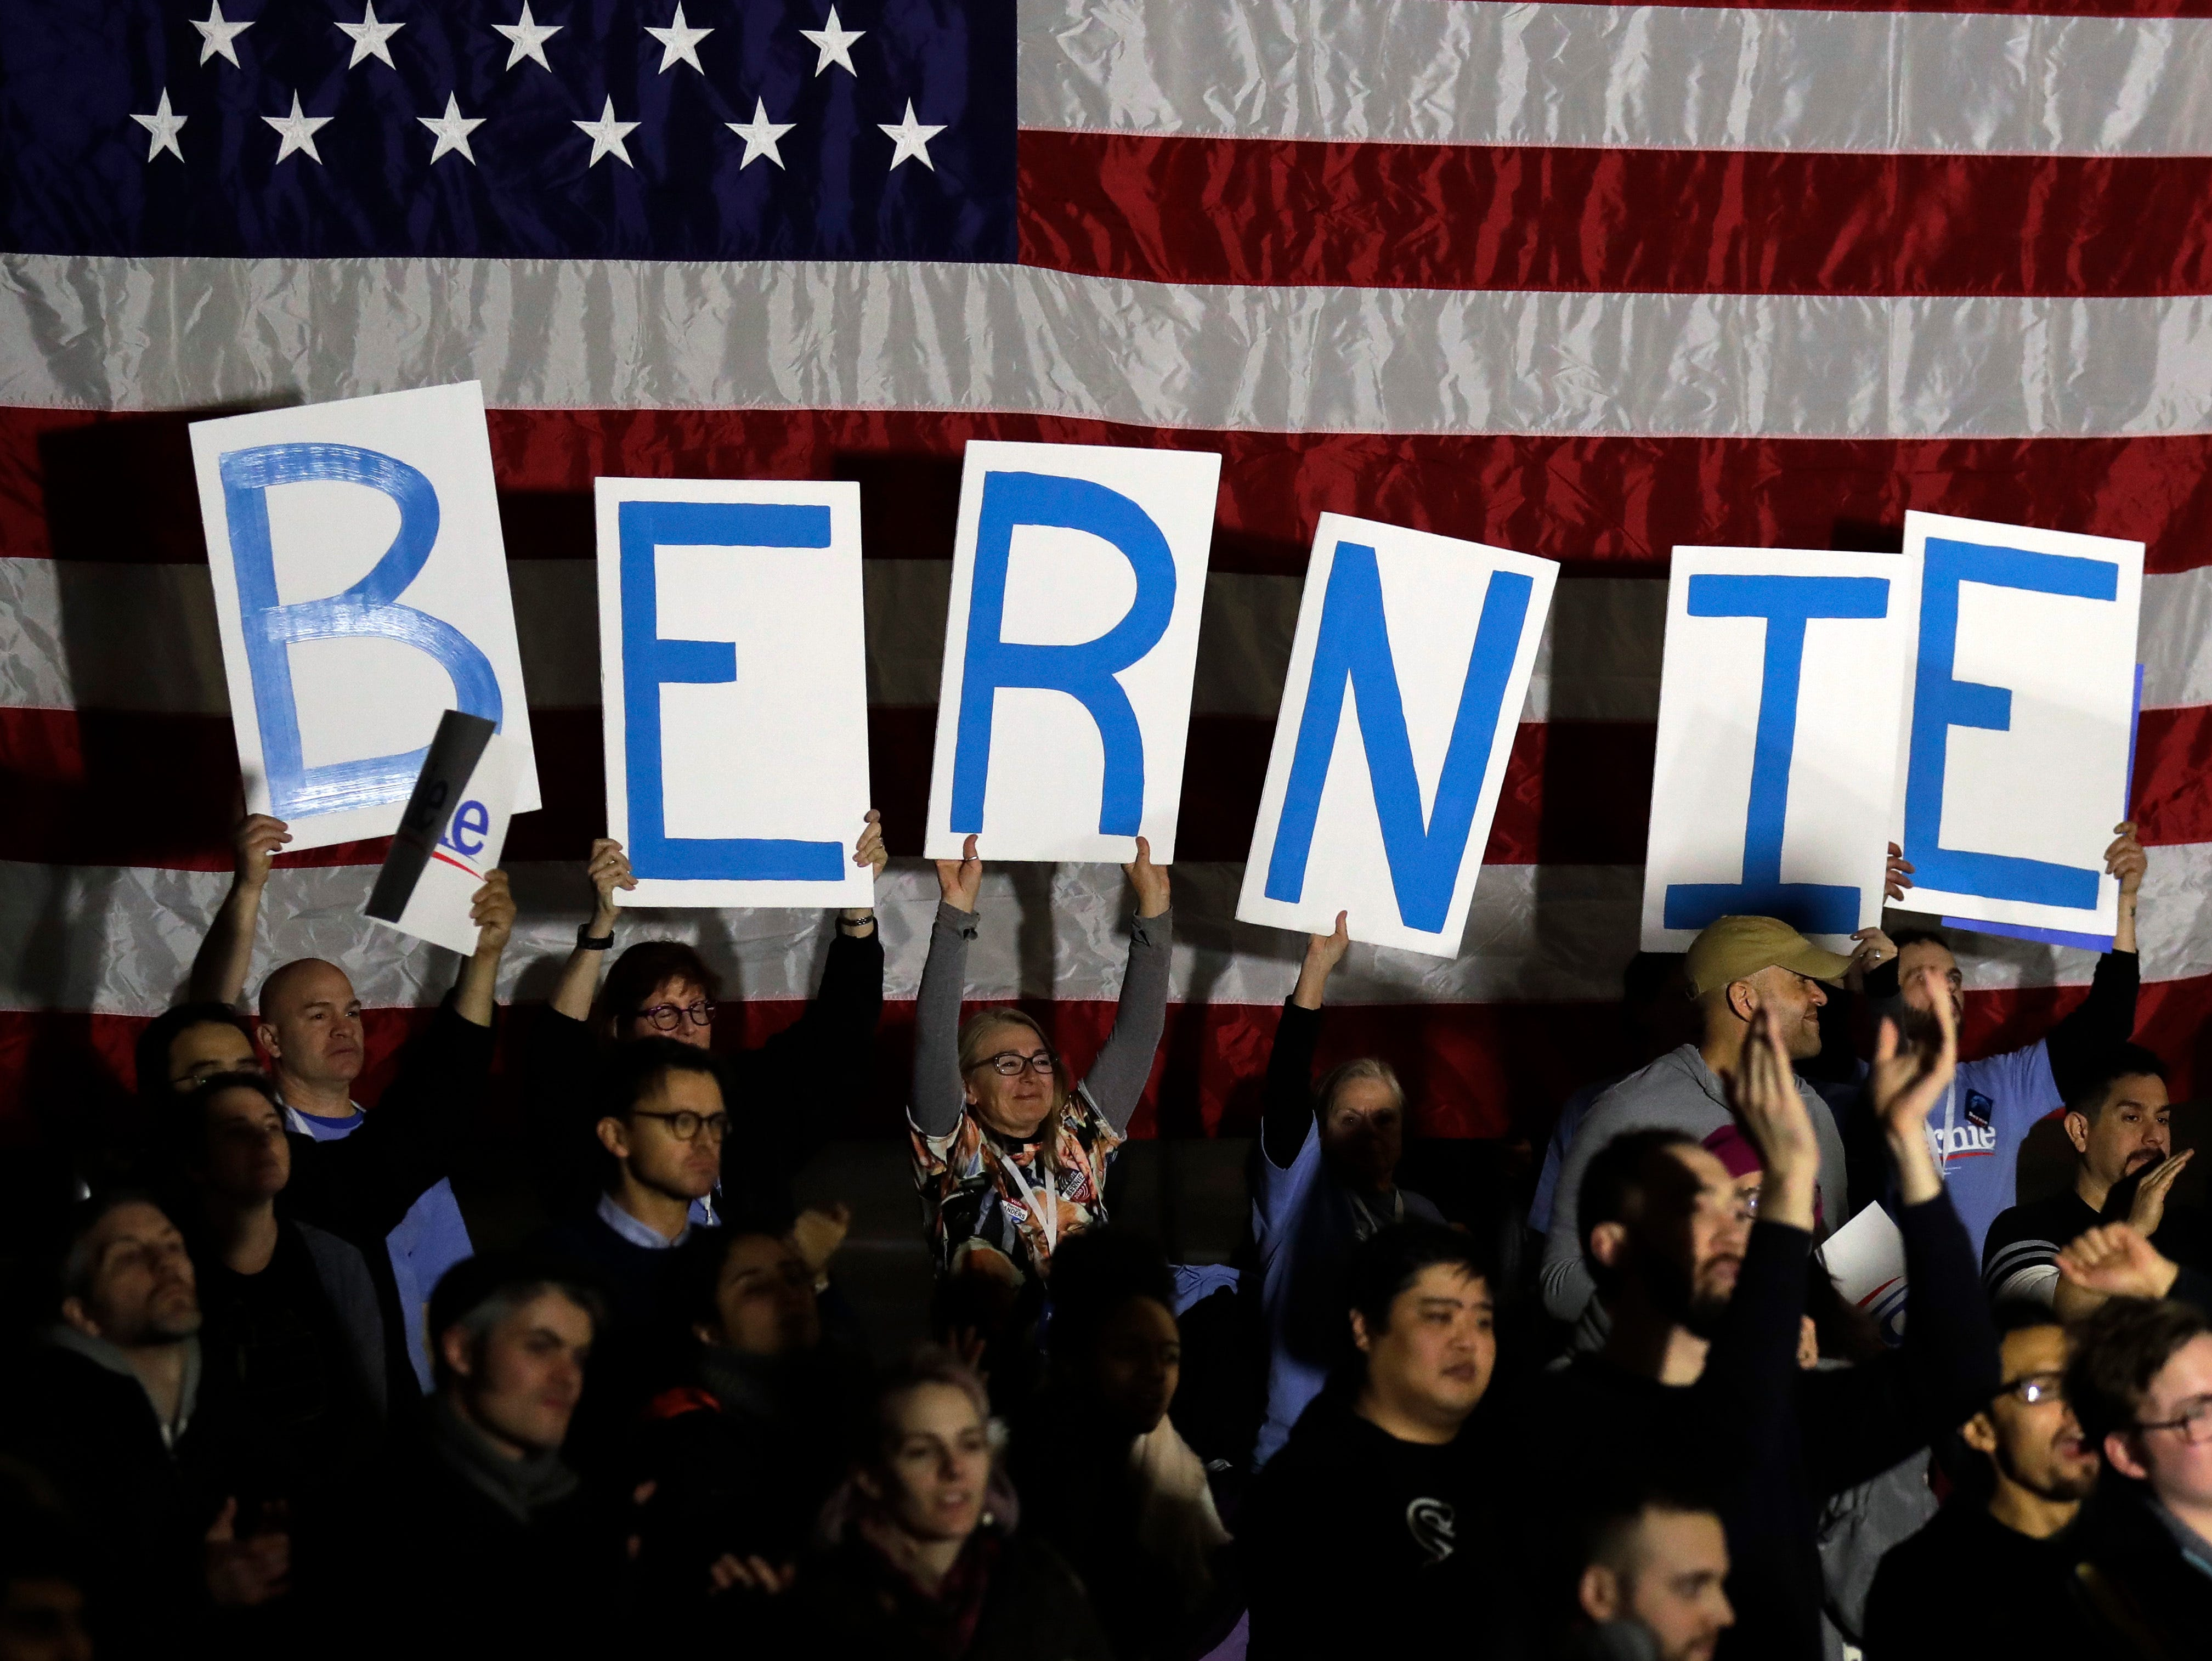 Supporters hold signs as they listen to Sen. Bernie Sanders, I-Vt., during his 2020 presidential campaign at Navy Pier in Chicago, Sunday, March 3, 2019. Over the next several weeks, Sanders will travel to Iowa, New Hampshire, South Carolina, Nevada, and California. He will then return to Burlington, Vt., for the official launch of his campaign.